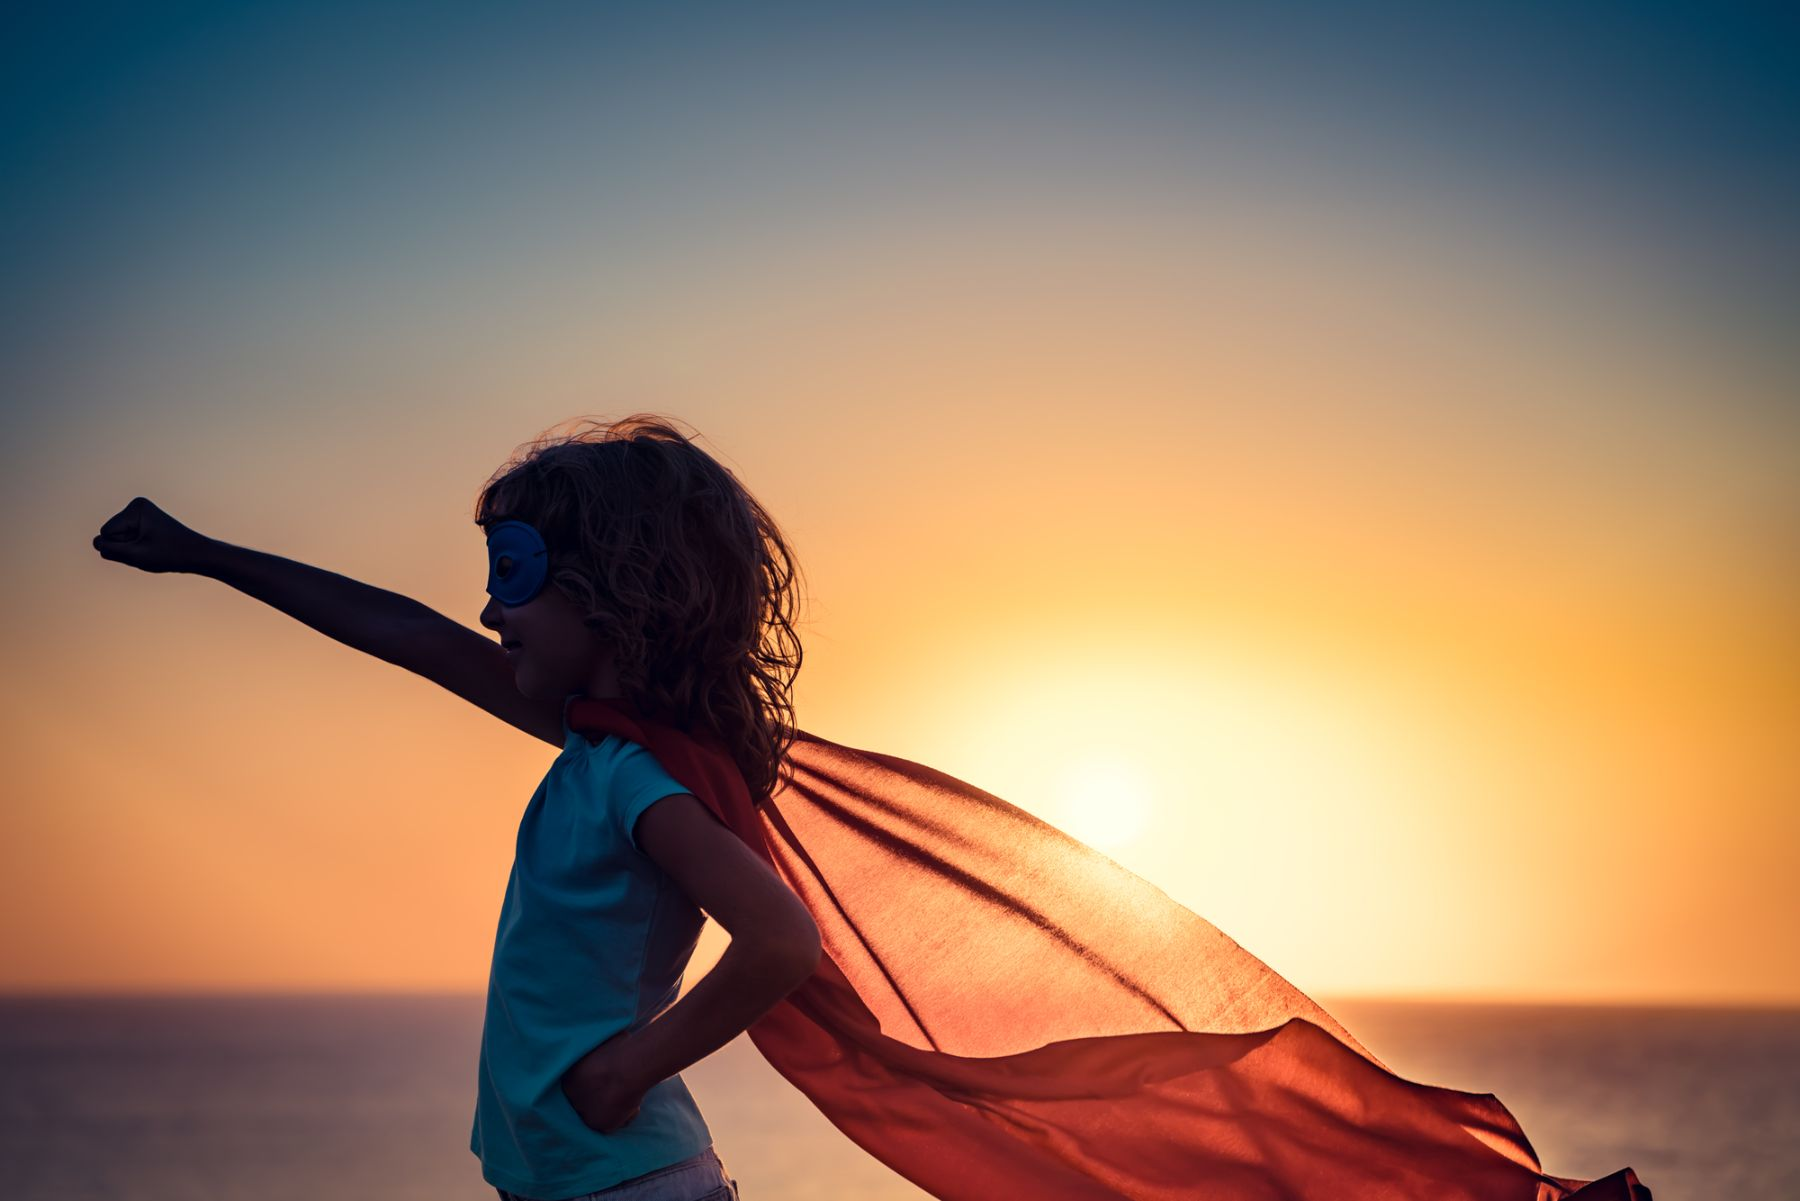 Young girl in a cape with sunset